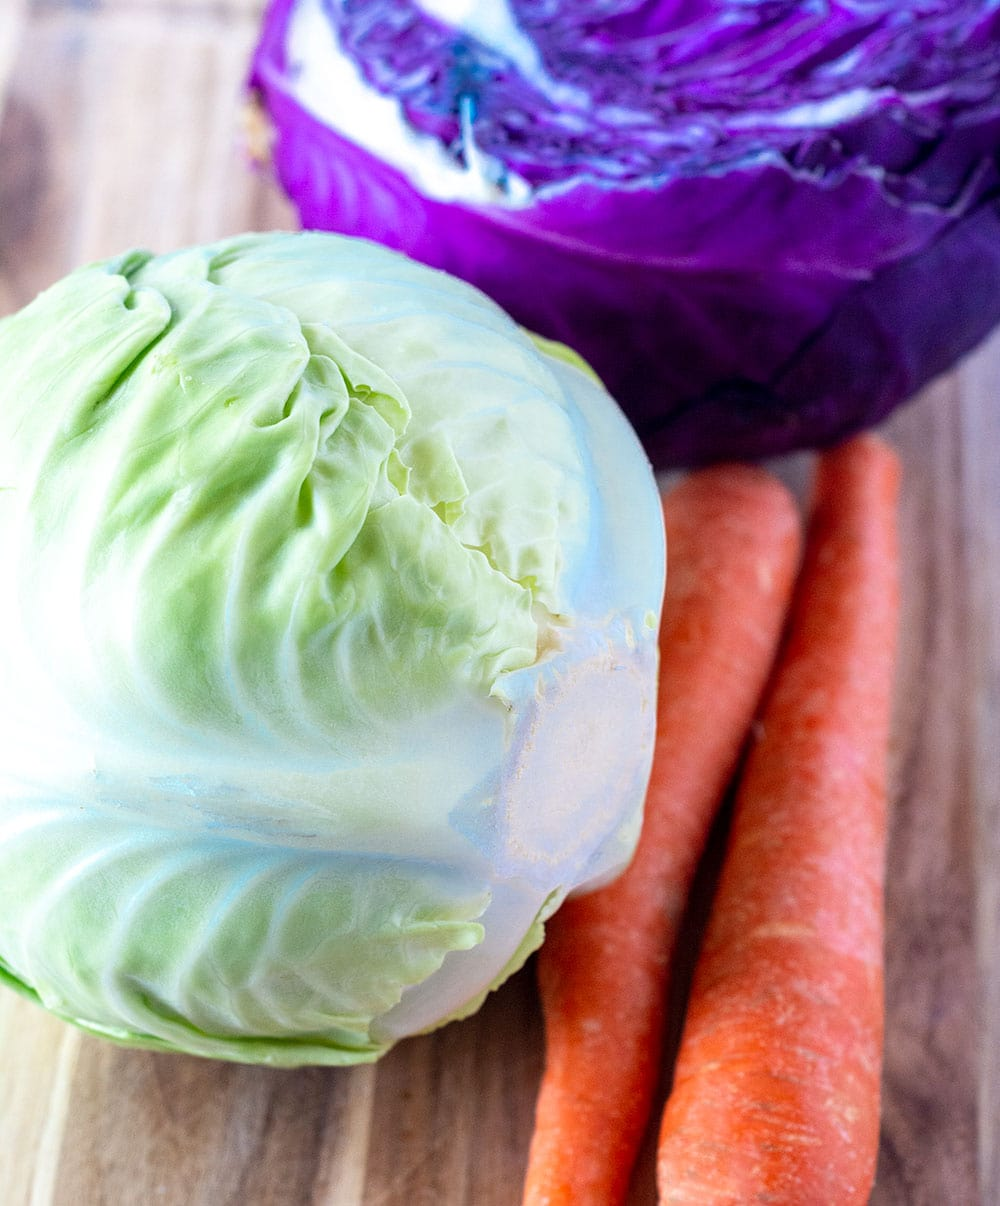 Ingredients for coleslaw, carrot, green cabbage, red cabbage on a wooden cutting board